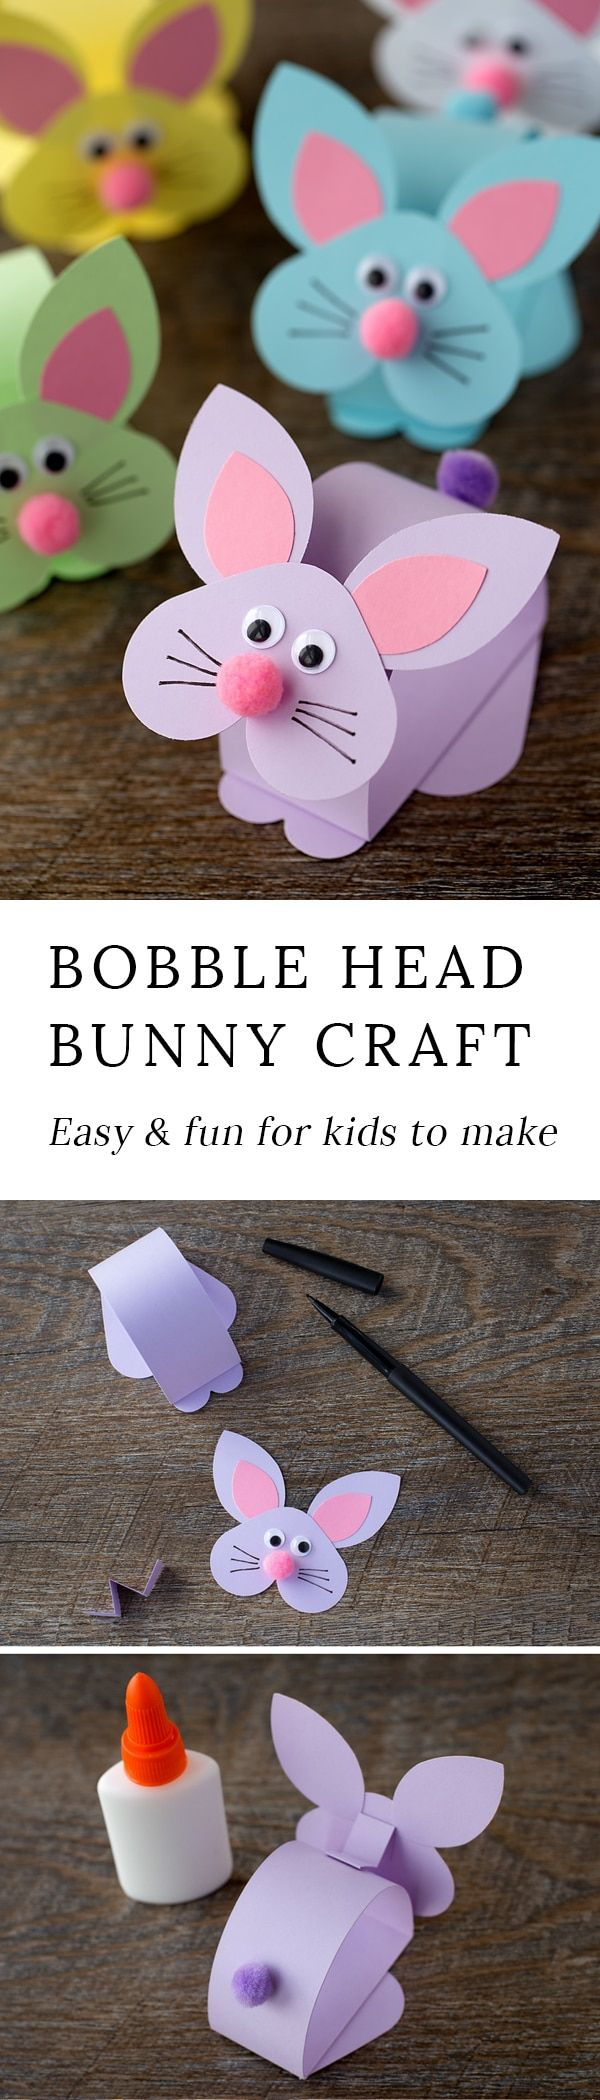 Just in time for Easter, kids of all ages will enjoy making an adorable paper bobble head bunny craft at school or home.